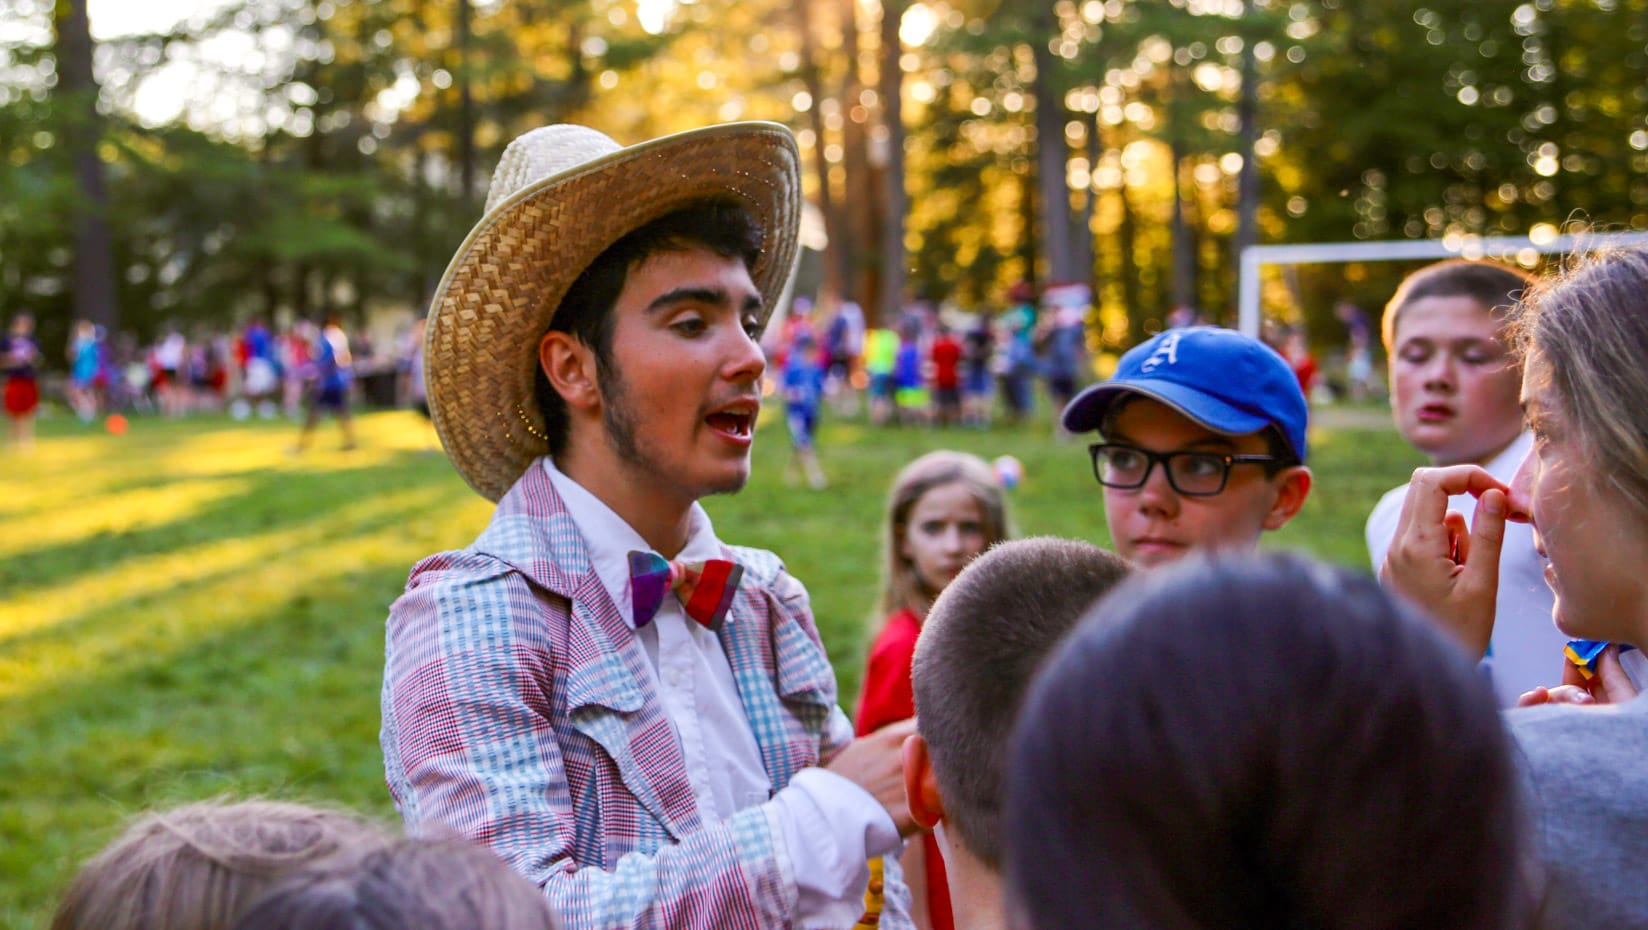 Staff talking with campers while wearing a cowboy hat